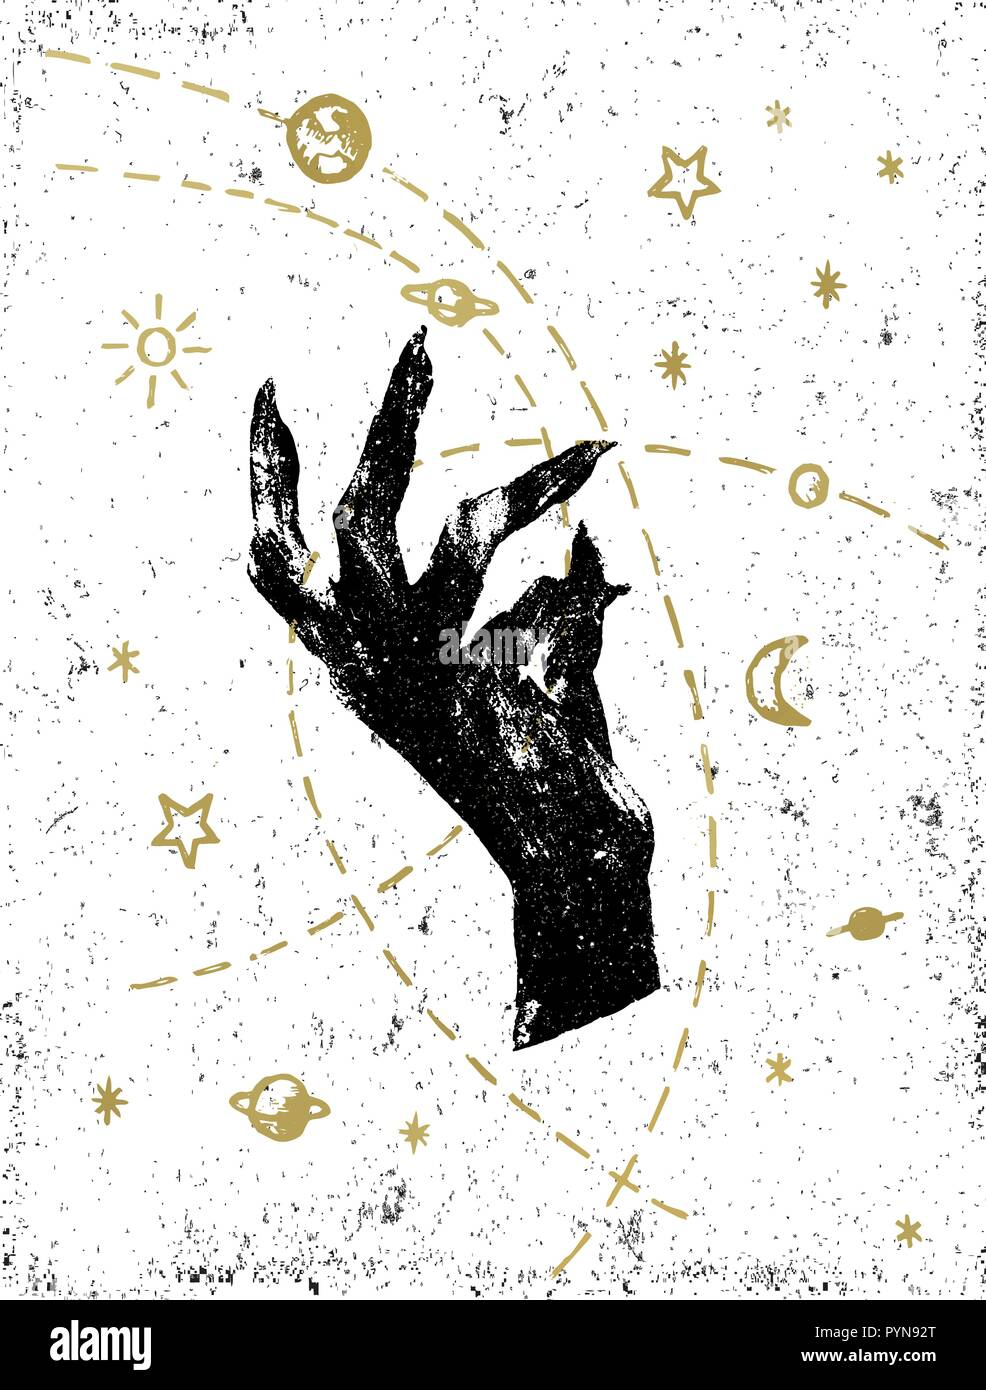 Black witch's hand with symbolic cosmos illustration on white textured background. Tattoo, sticker, patch or poster print design. - Stock Image